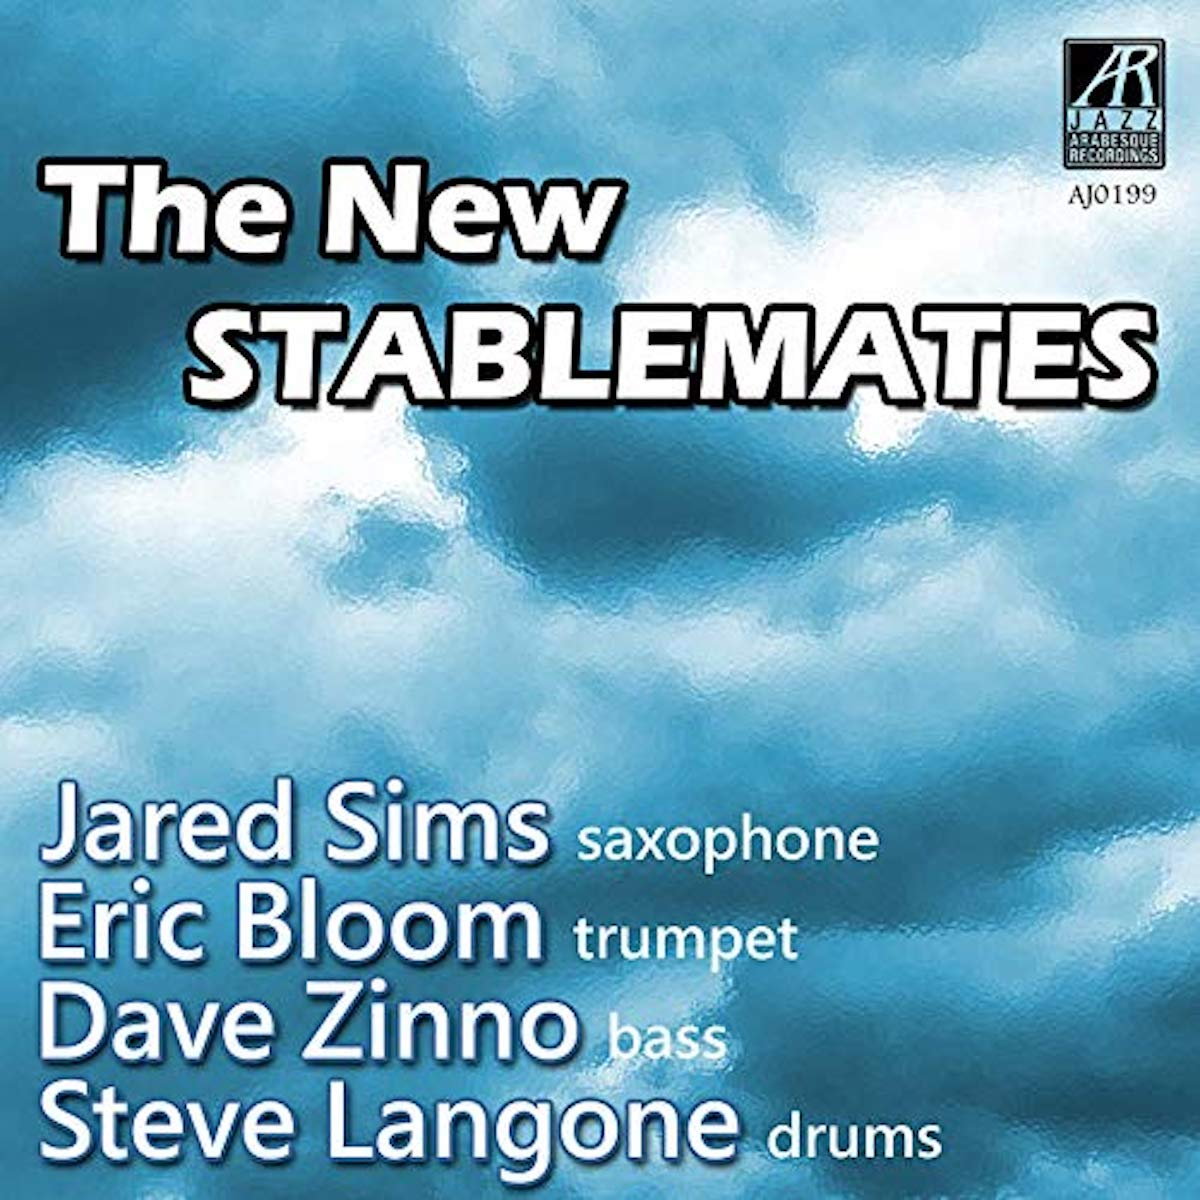 AJ0199  | The New Stablemates |  Jared Sims